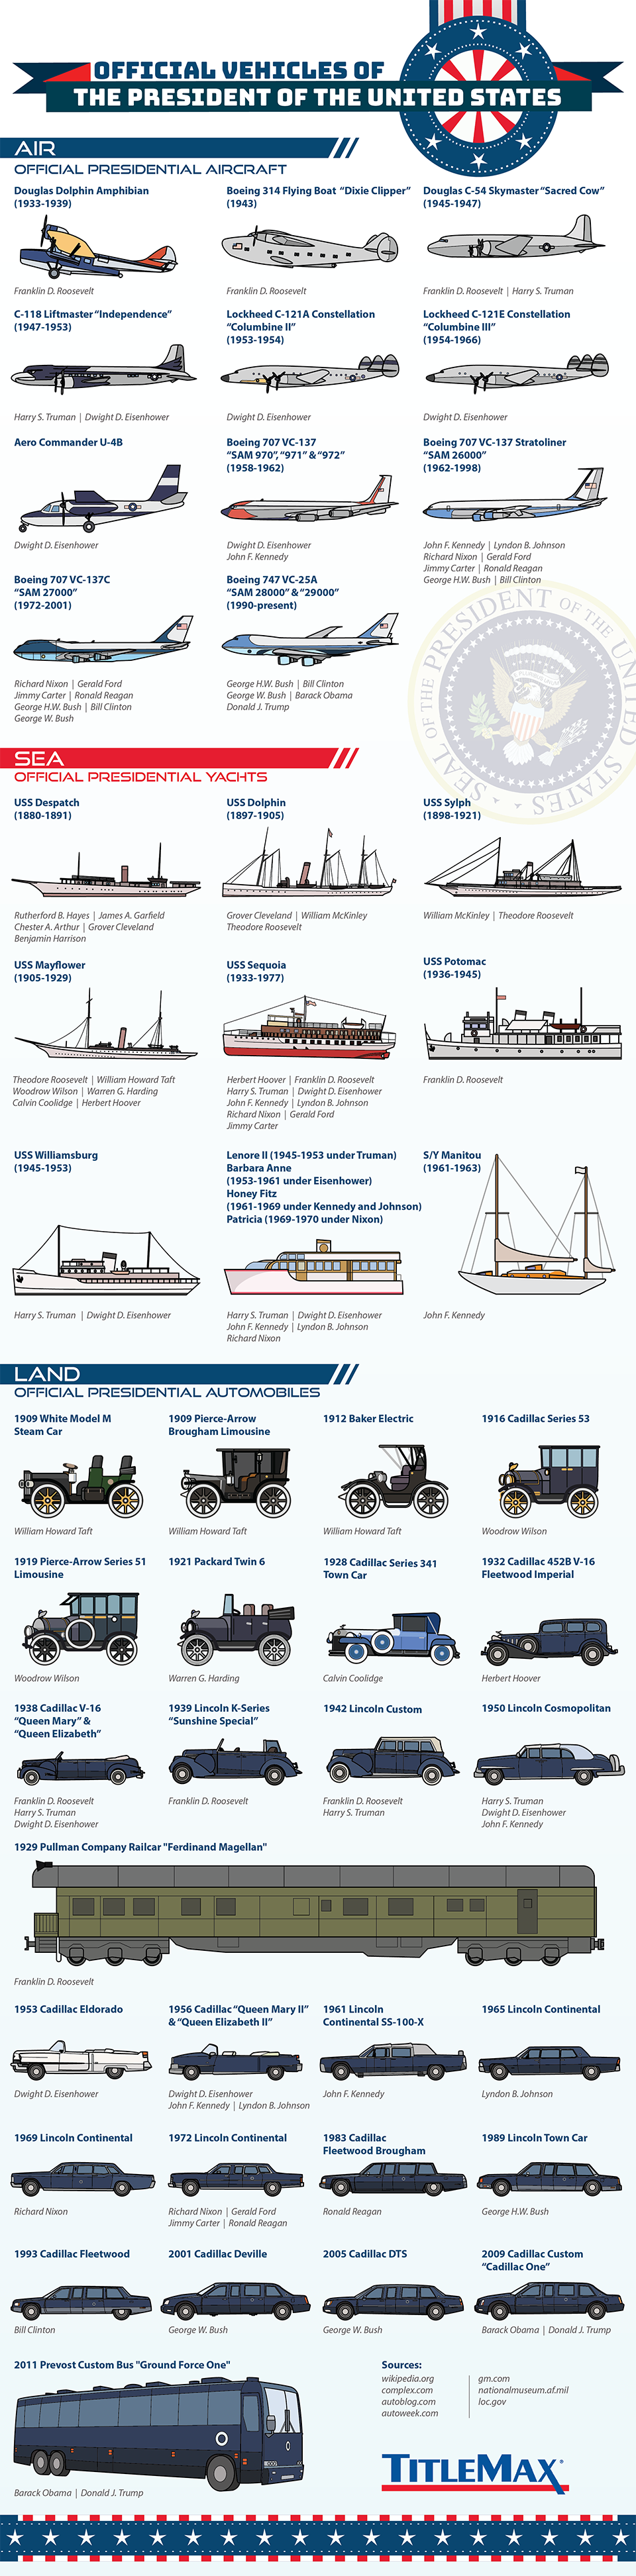 Official Vehicles of The President of The United States #infographic